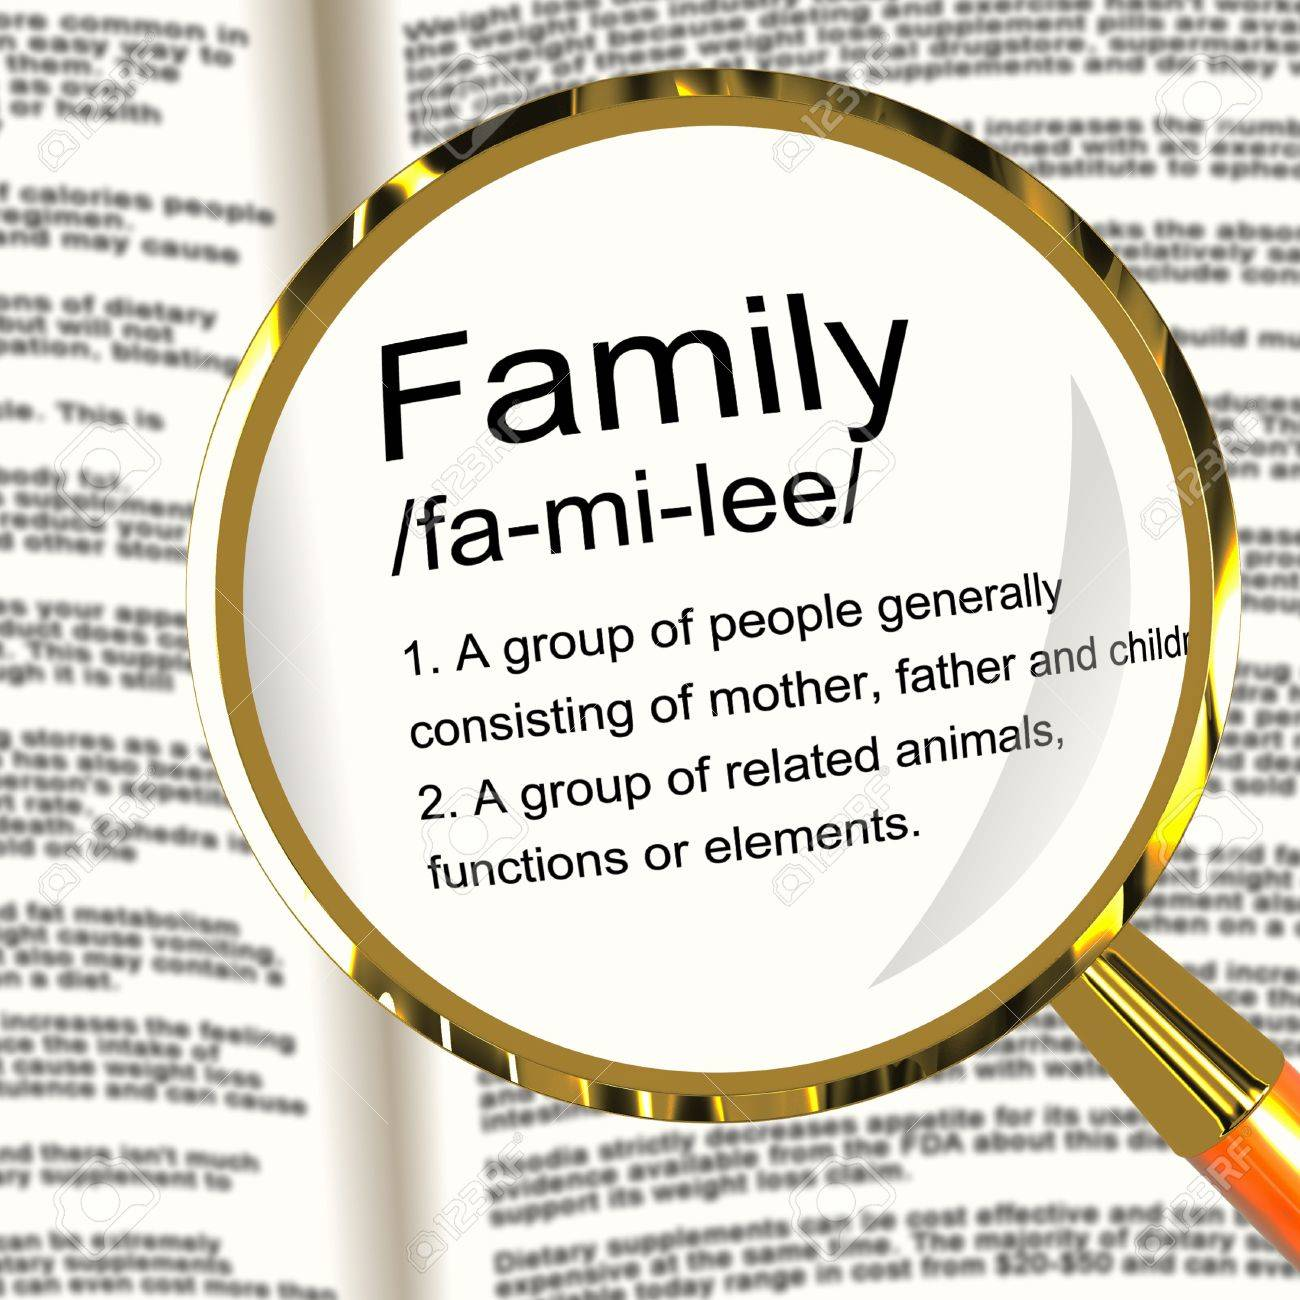 Family Definition Magnifier Shows Mom Dad And Kids Unity Stock Photo - 13564508